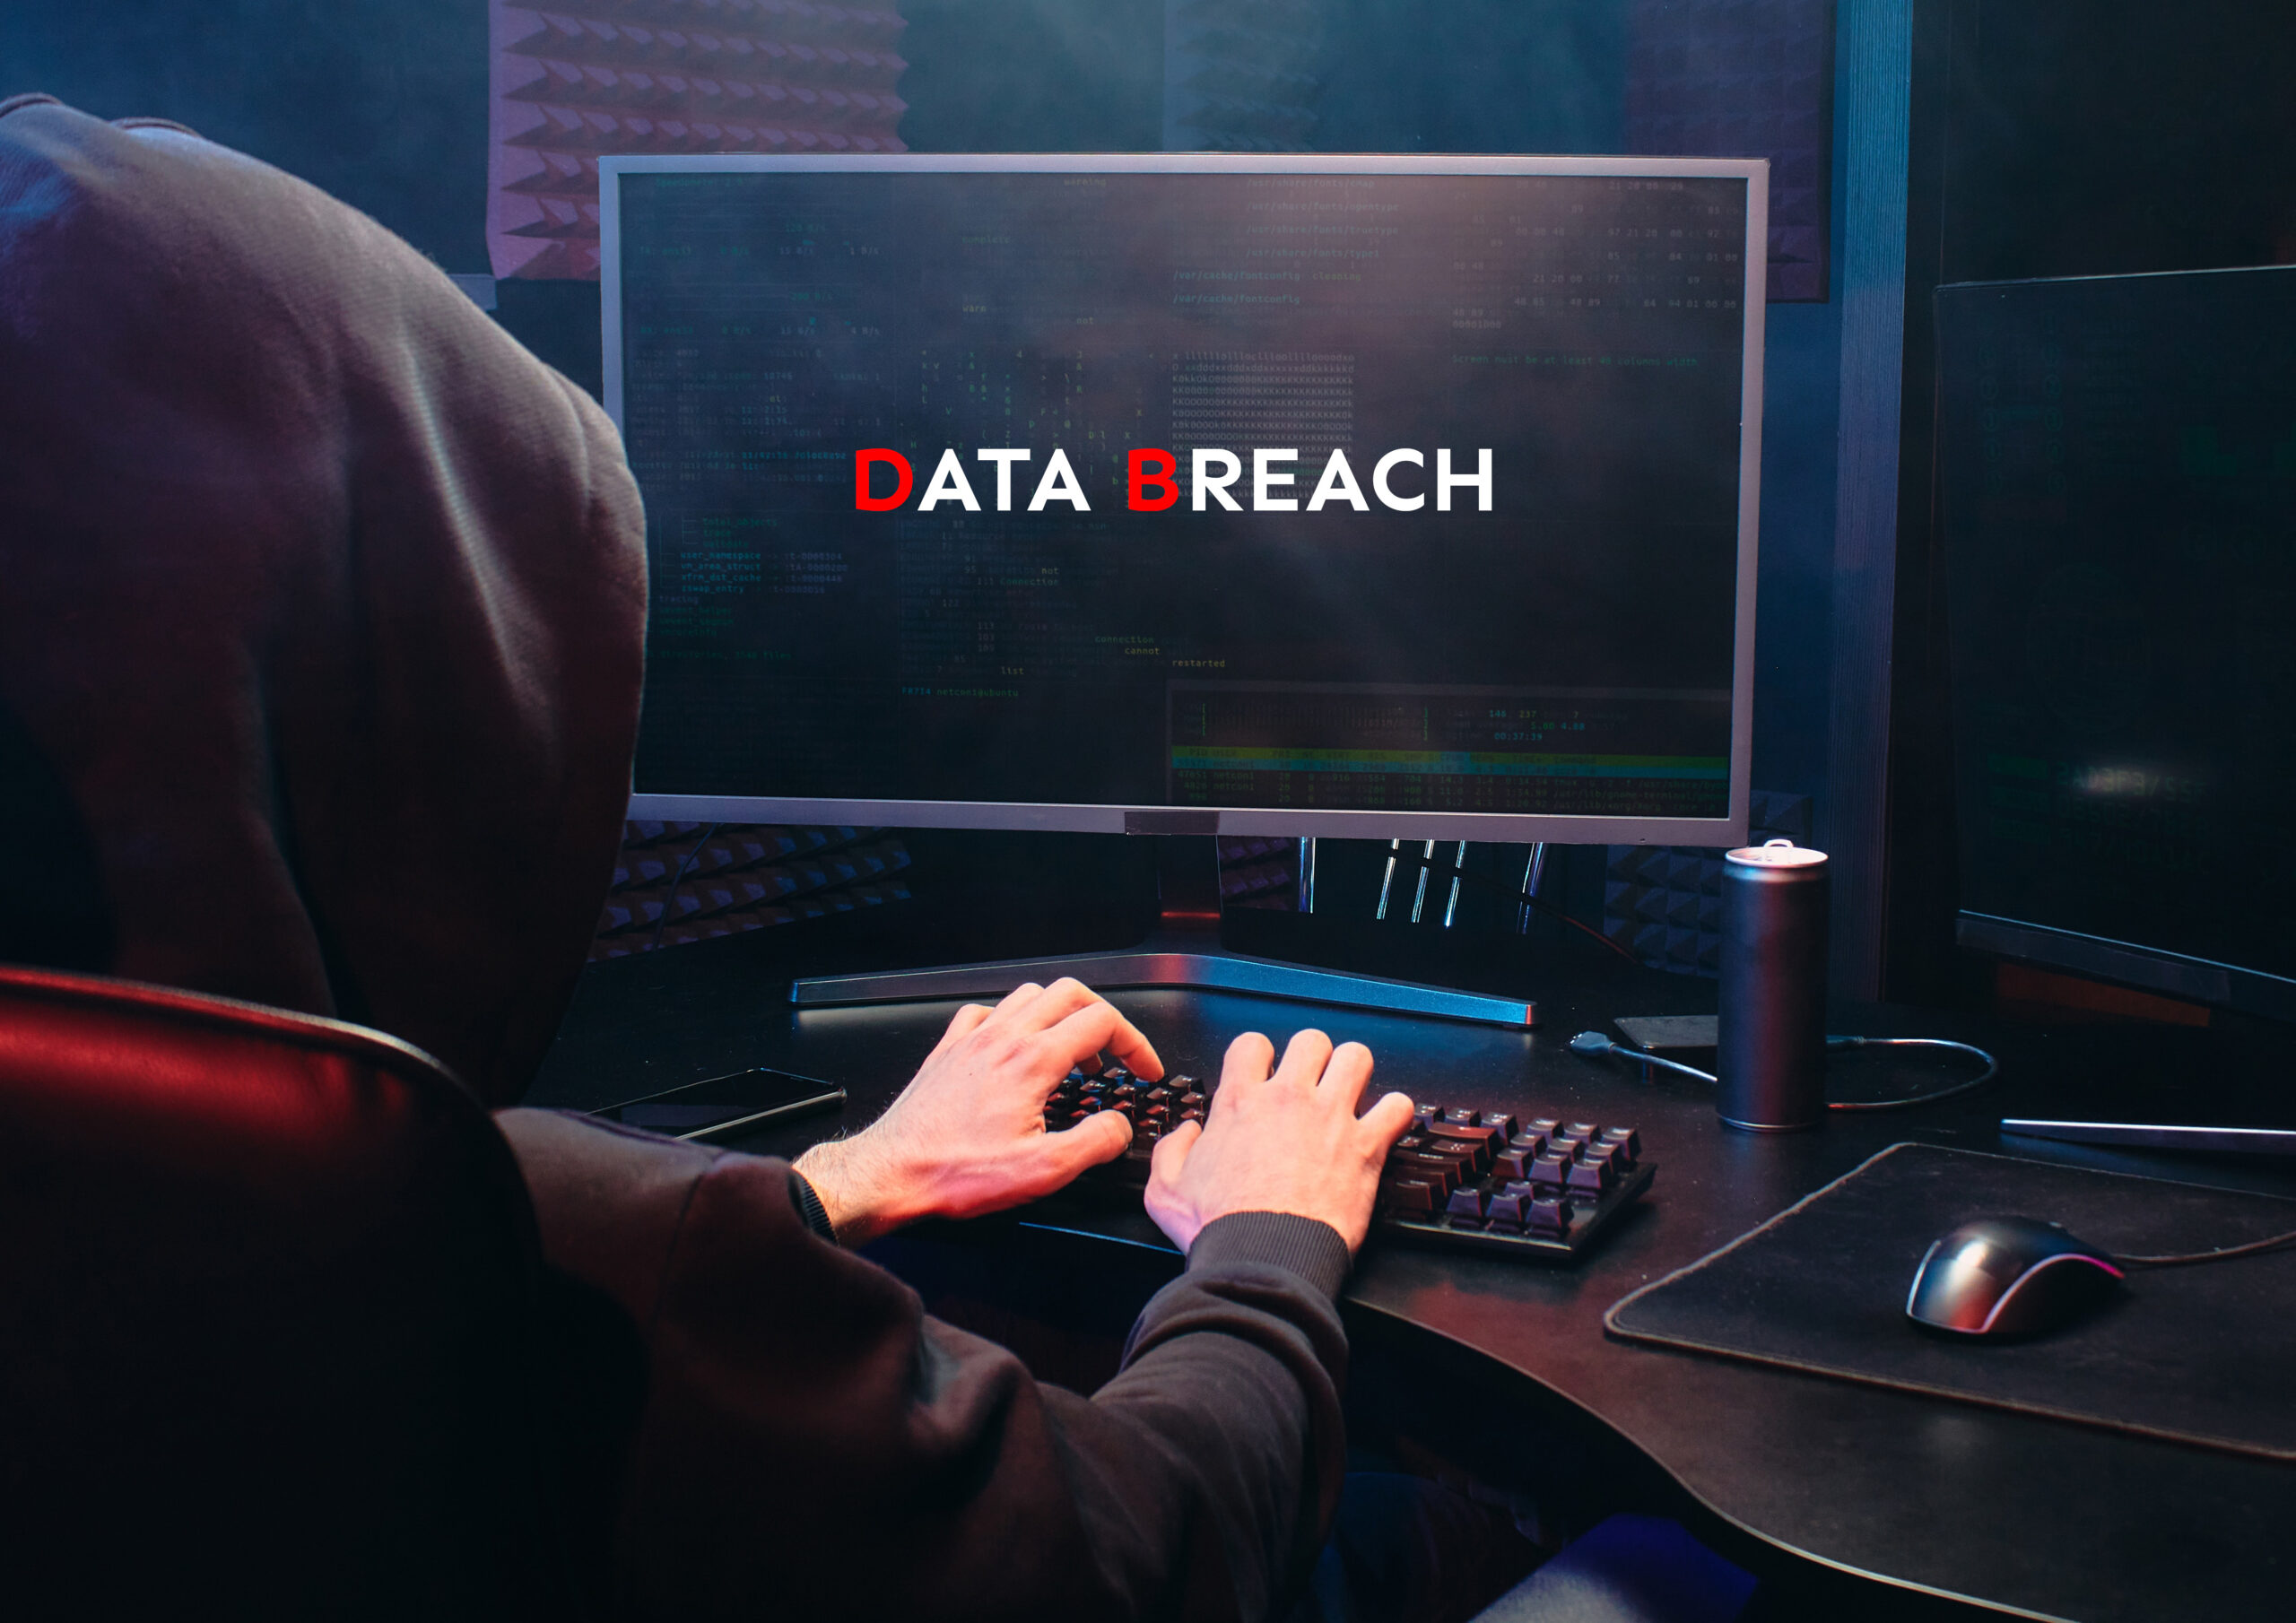 How to check whether my data is breached or not?